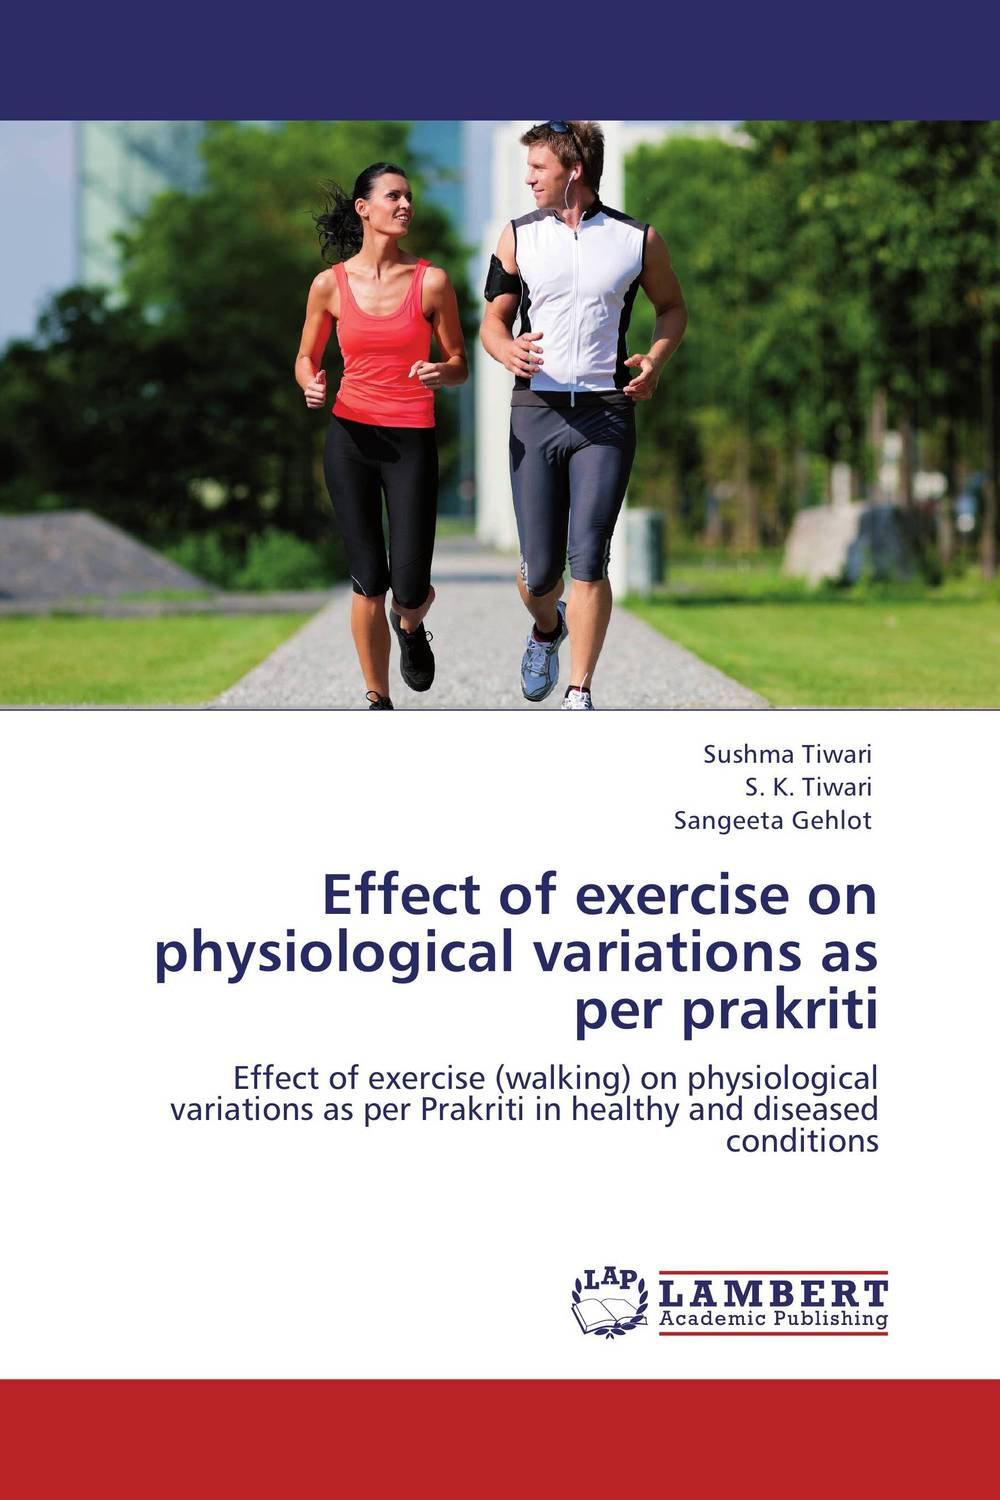 Effect of exercise on physiological variations as per prakriti